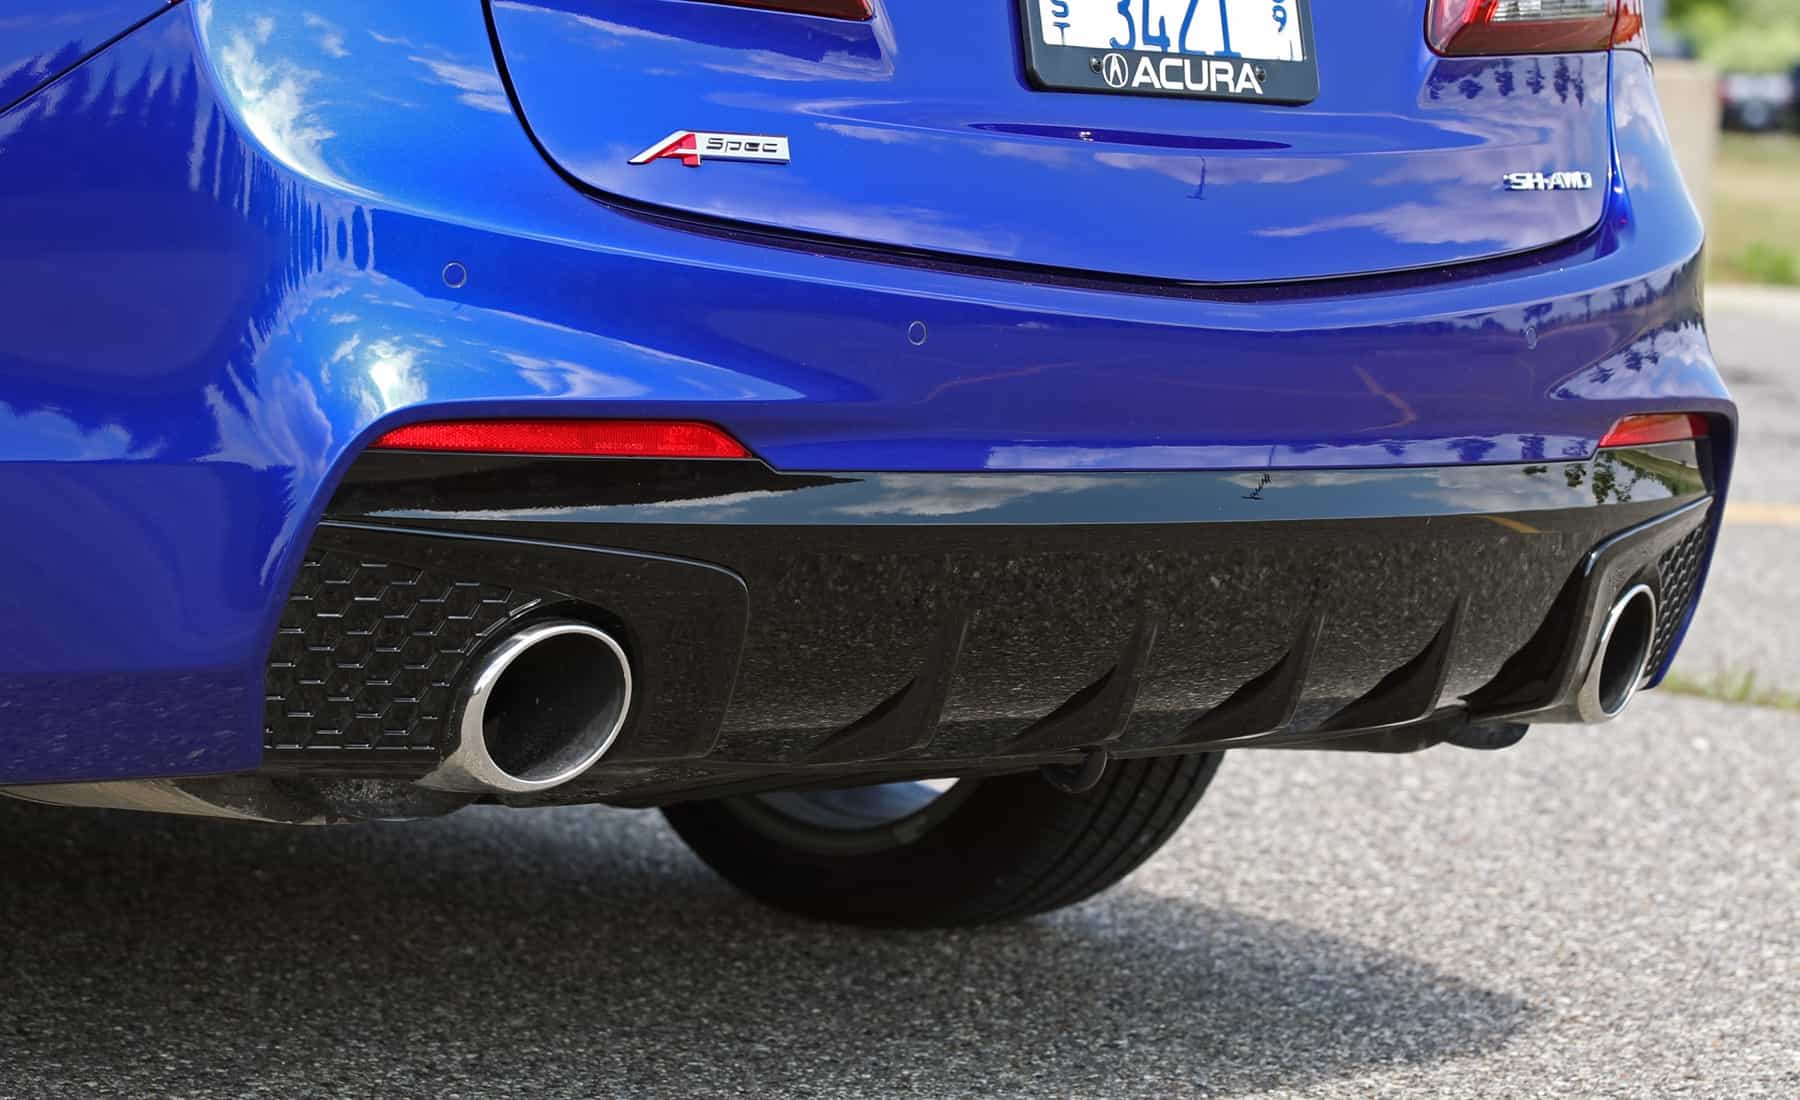 2018 Acura TLX Exterior View Rear Body And Exhaust Muffler (Photo 33 of 46)